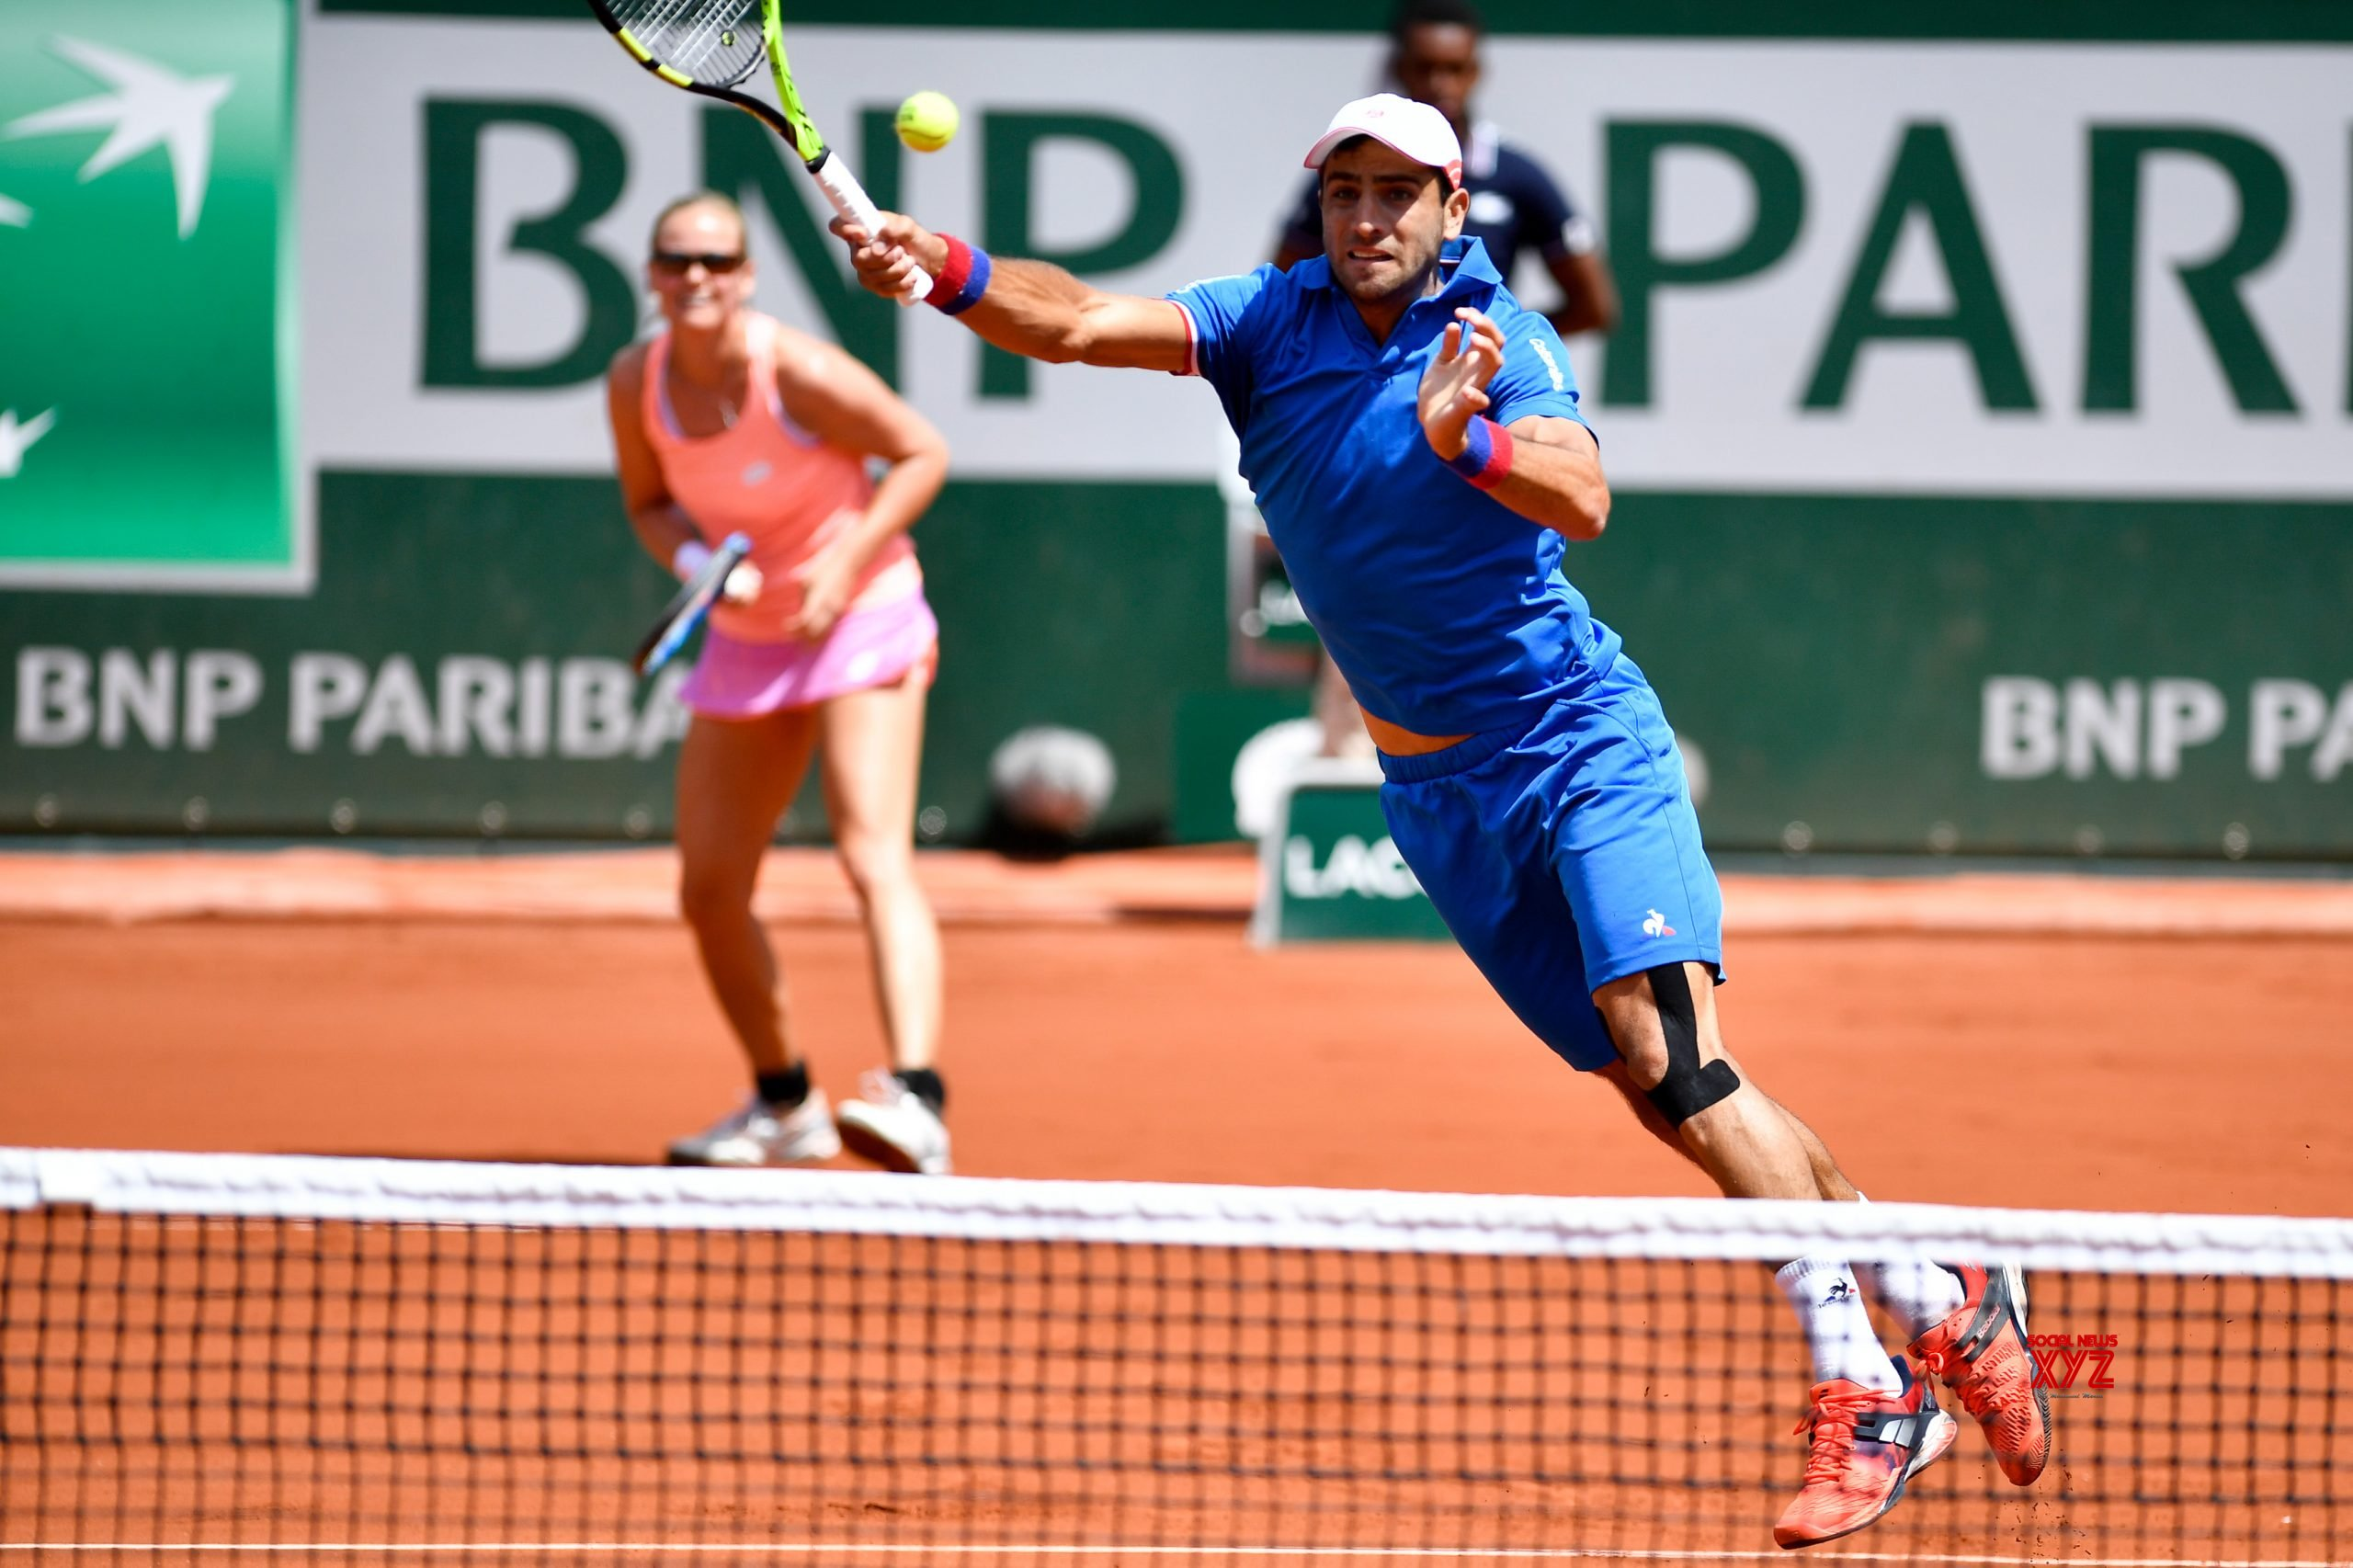 Doubles ace Robert Farah cleared of doping charge